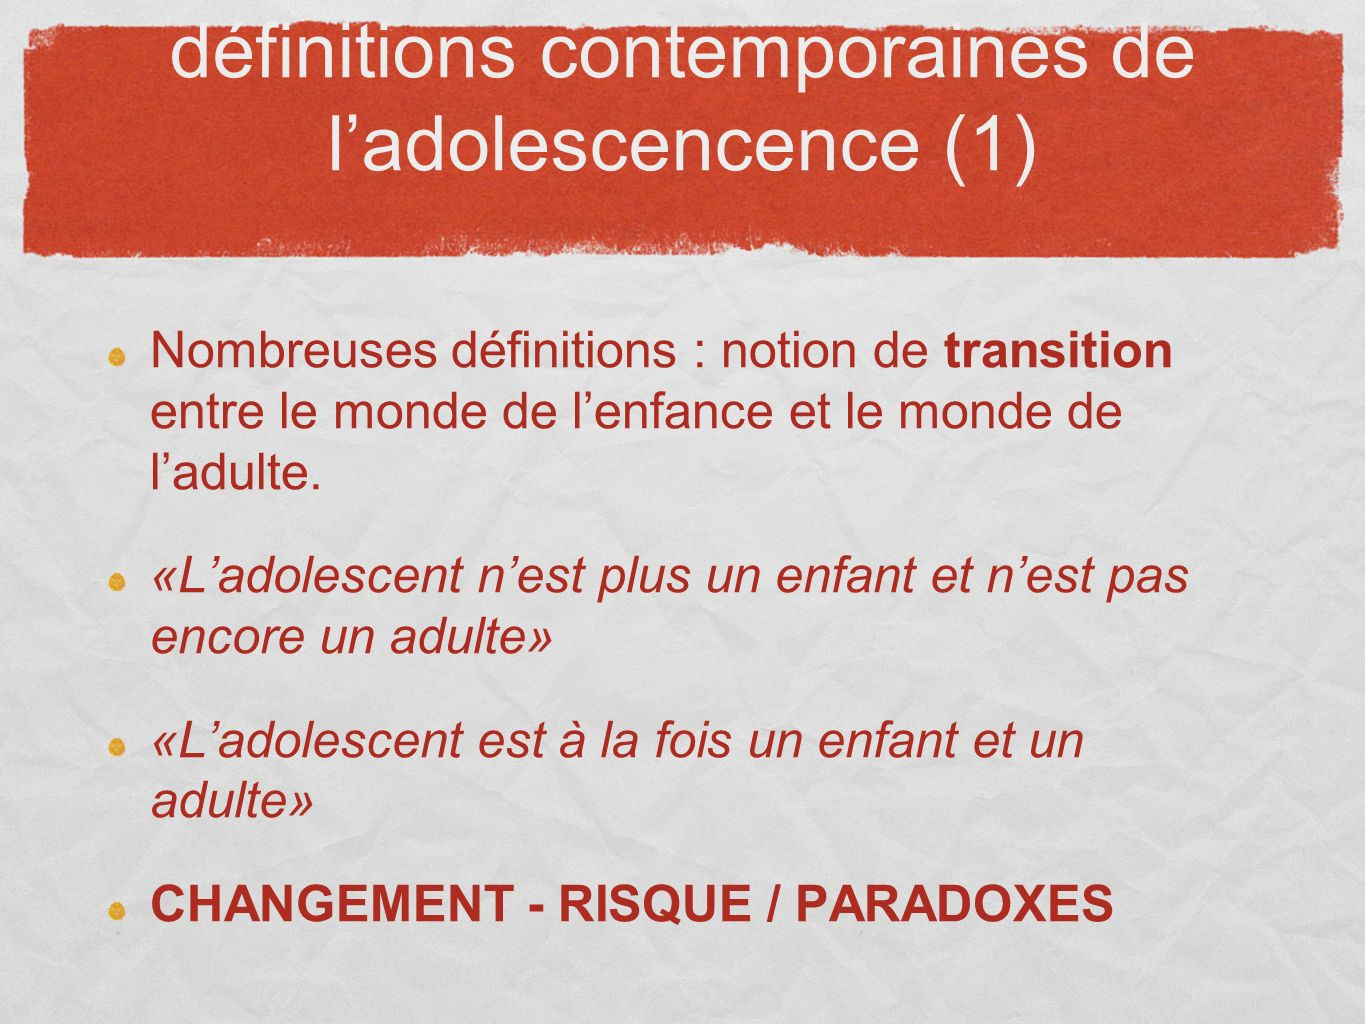 définitions contemporaines de l'adolescencence (1)